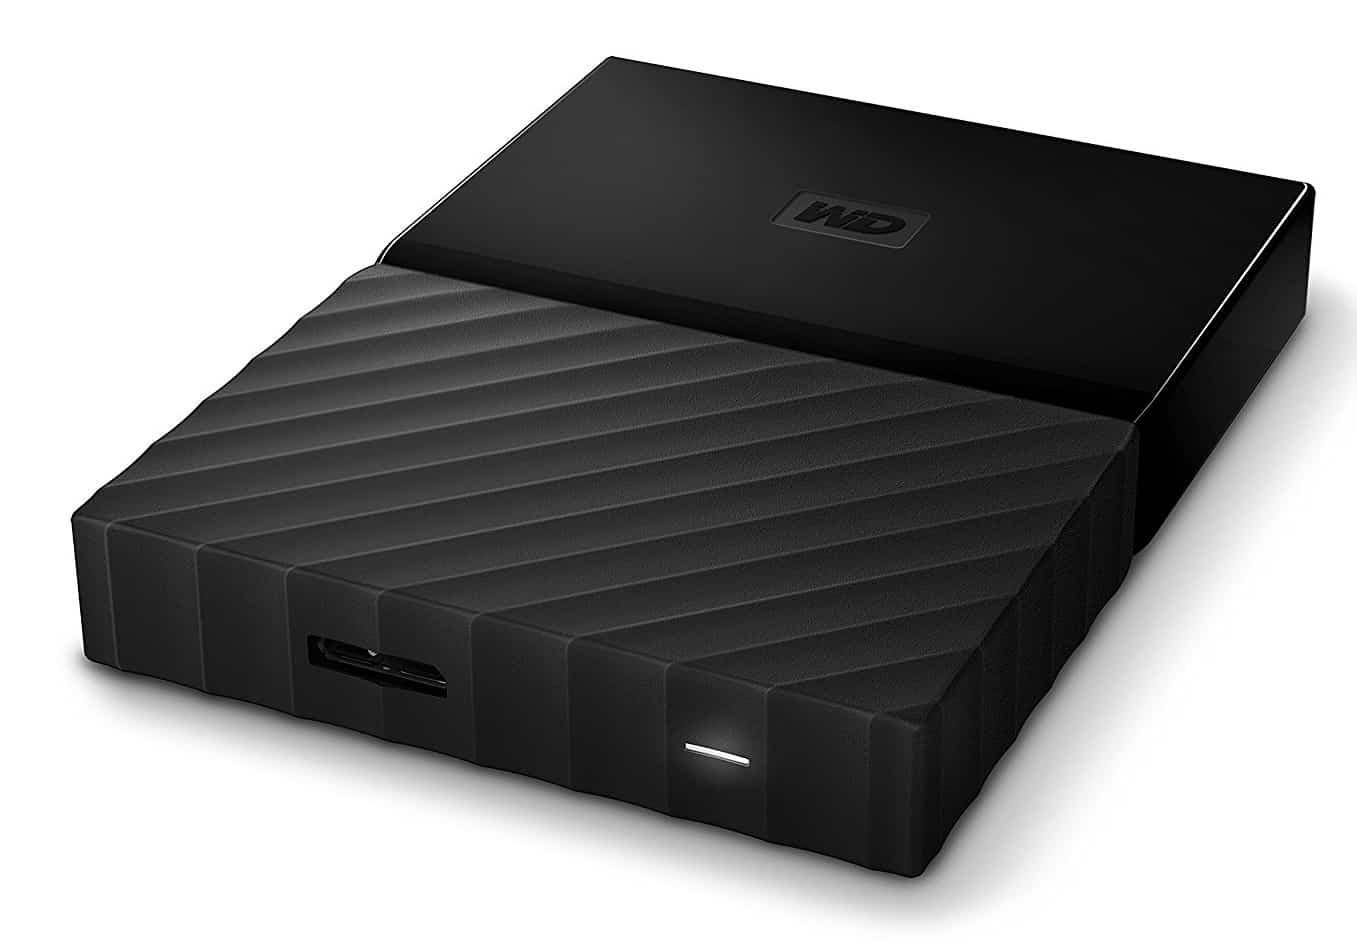 WD Black My Passport External Hard Drive